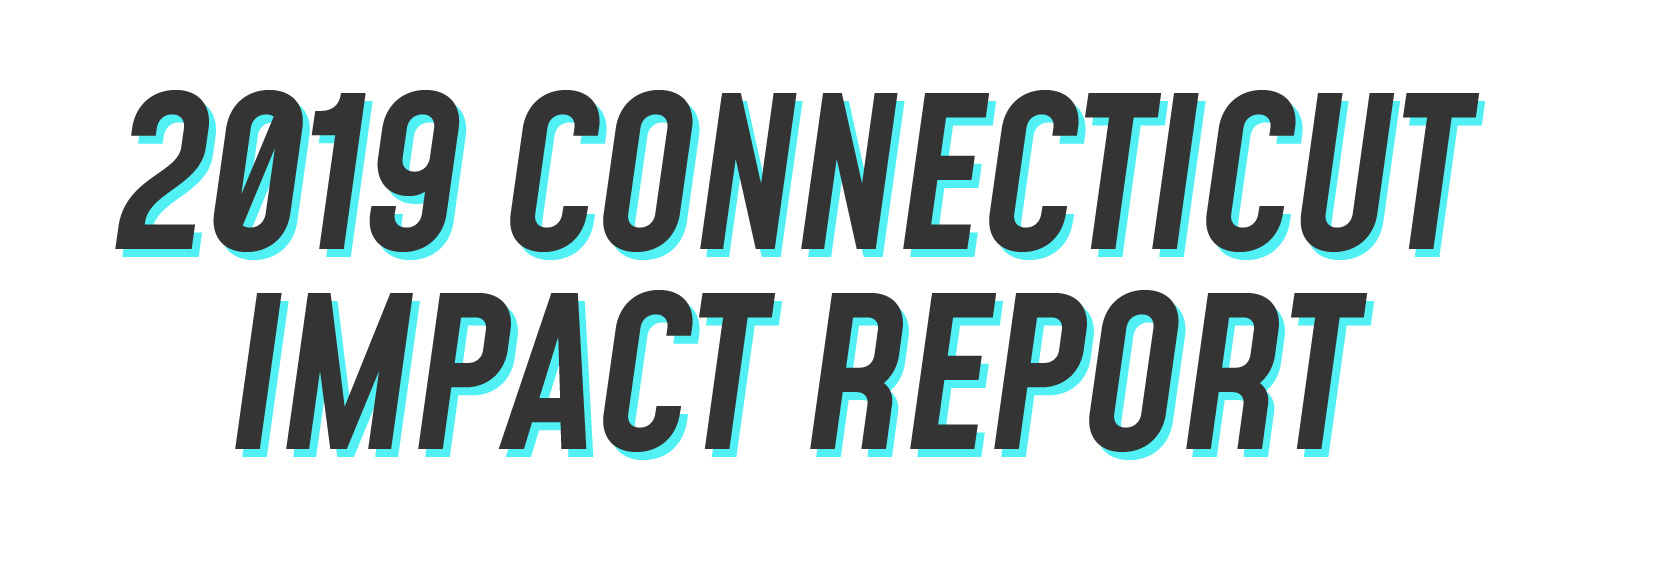 Connecticut Digital Fundraising Impact